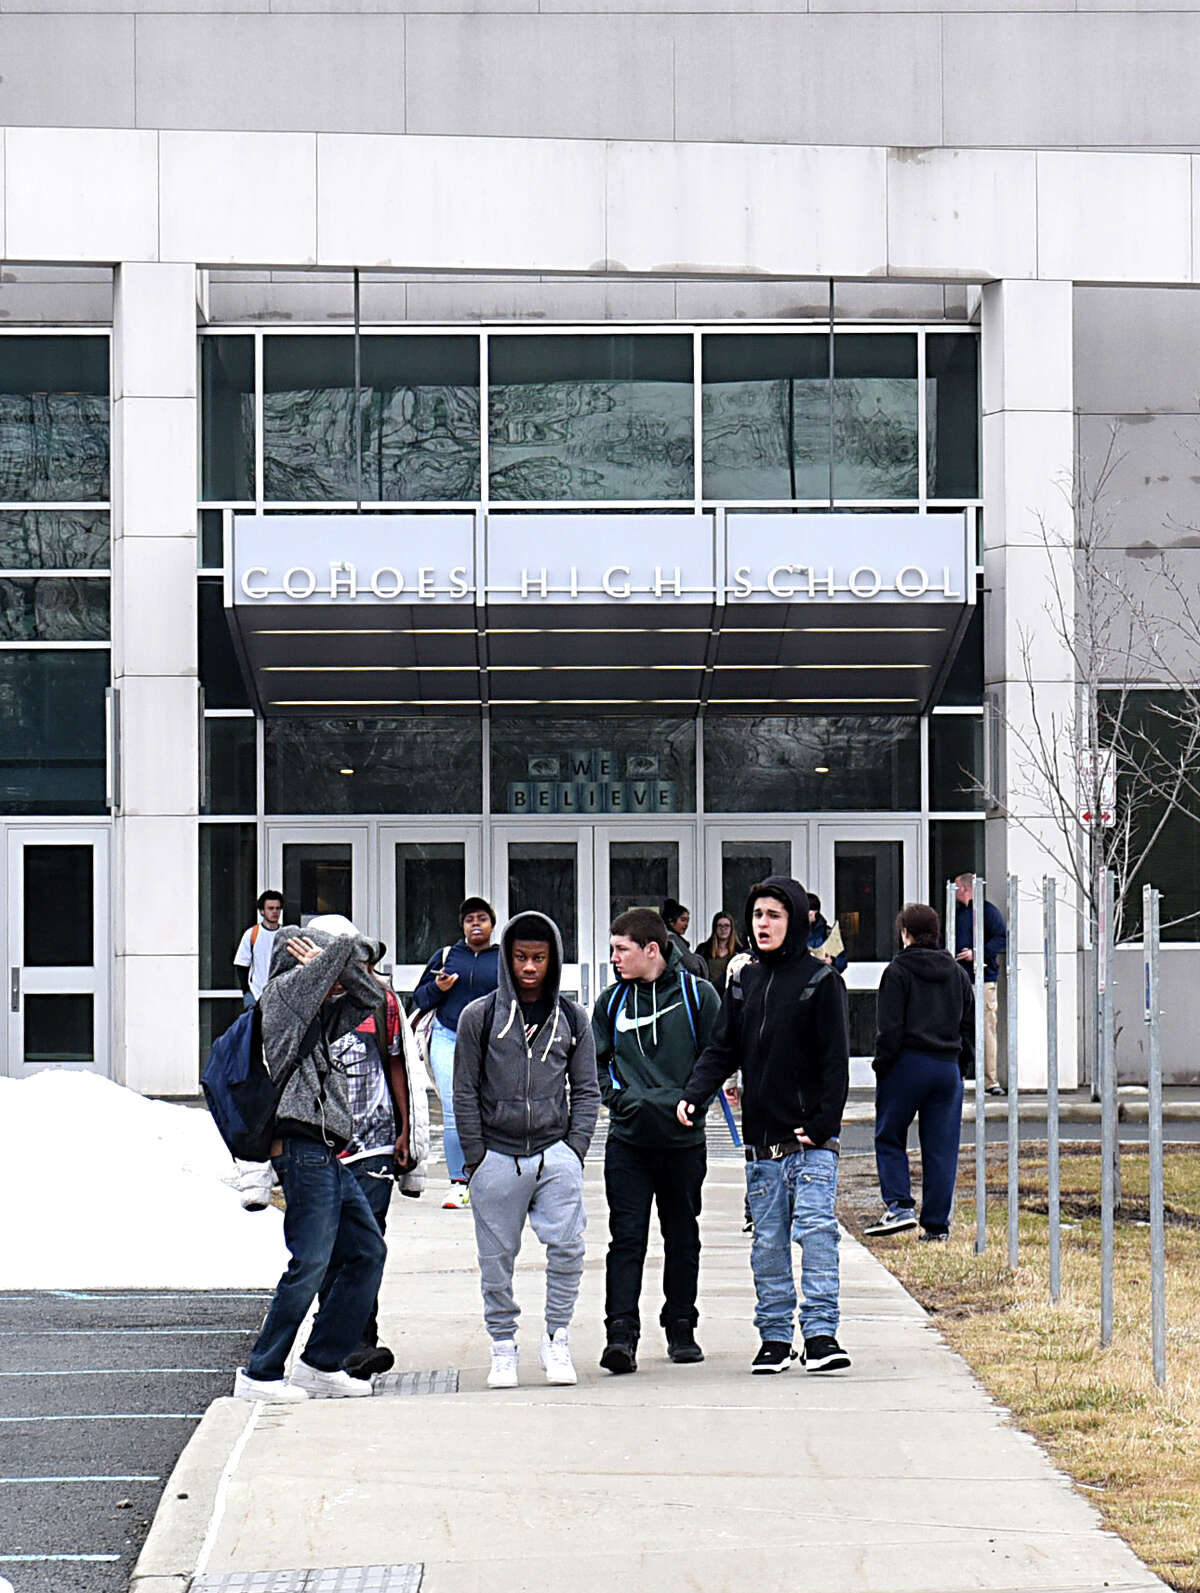 Students walk home from Cohoes High School on Monday, March 27, 2017 in Cohoes, N.Y. For the first time in Cohoes' history, students may soon be riding the bus to school. All students in the district walk or depend on rides from family and friends to get to school but the district is weighing the possibility of giving out bus passes that would let students take CDTA buses to school. ( Lori Van Buren / Times Union)